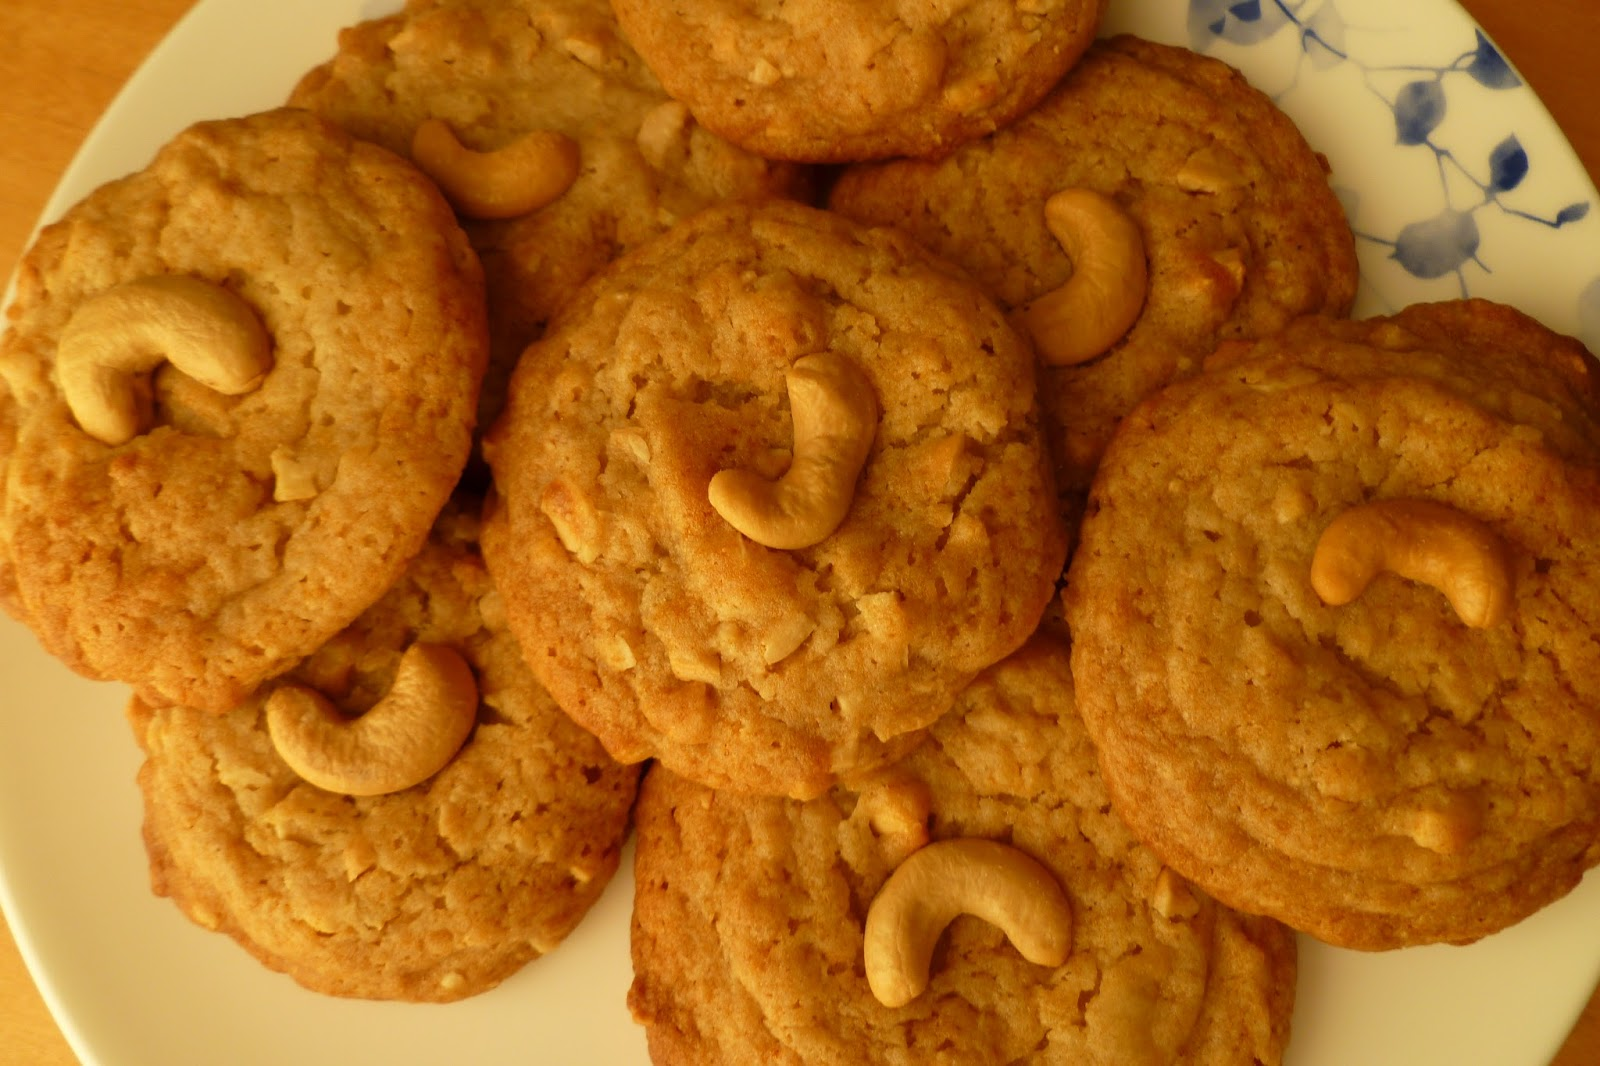 Cashew Butter Cookies - made August 24, 2013 from Land O Lakes Cookies